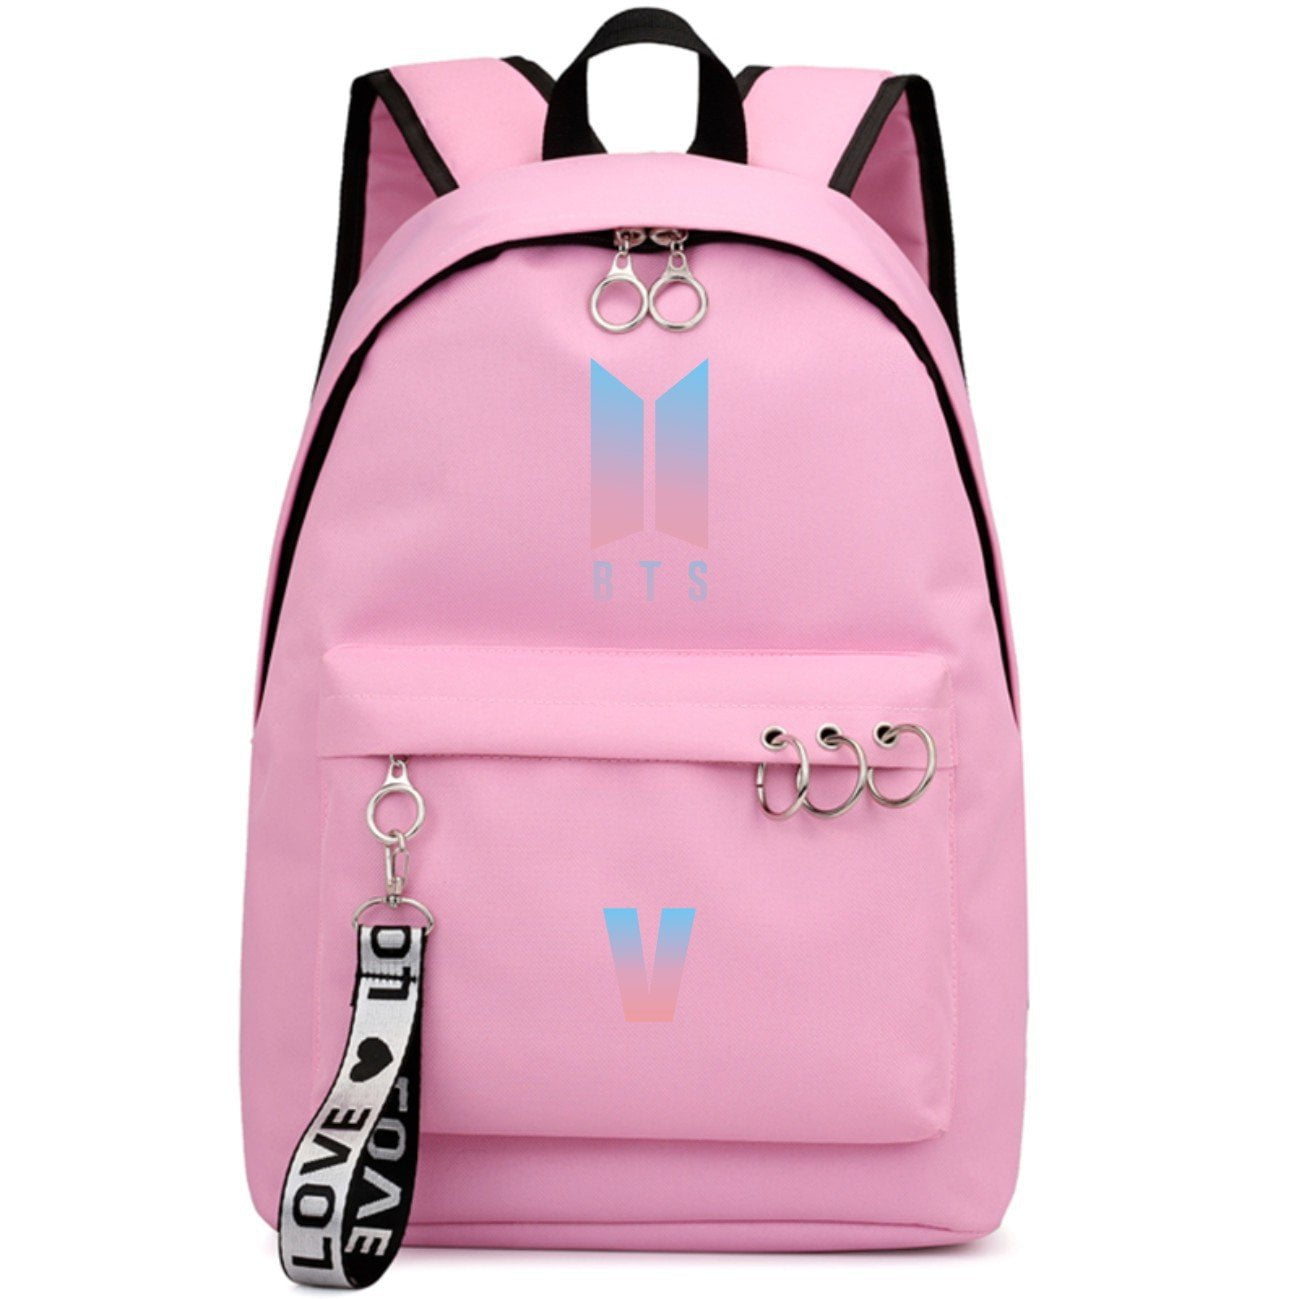 BTS New Logo Large Capacity Backpack / School Bag with Silver Rings in 2 Colours  583071224455#3925845045030